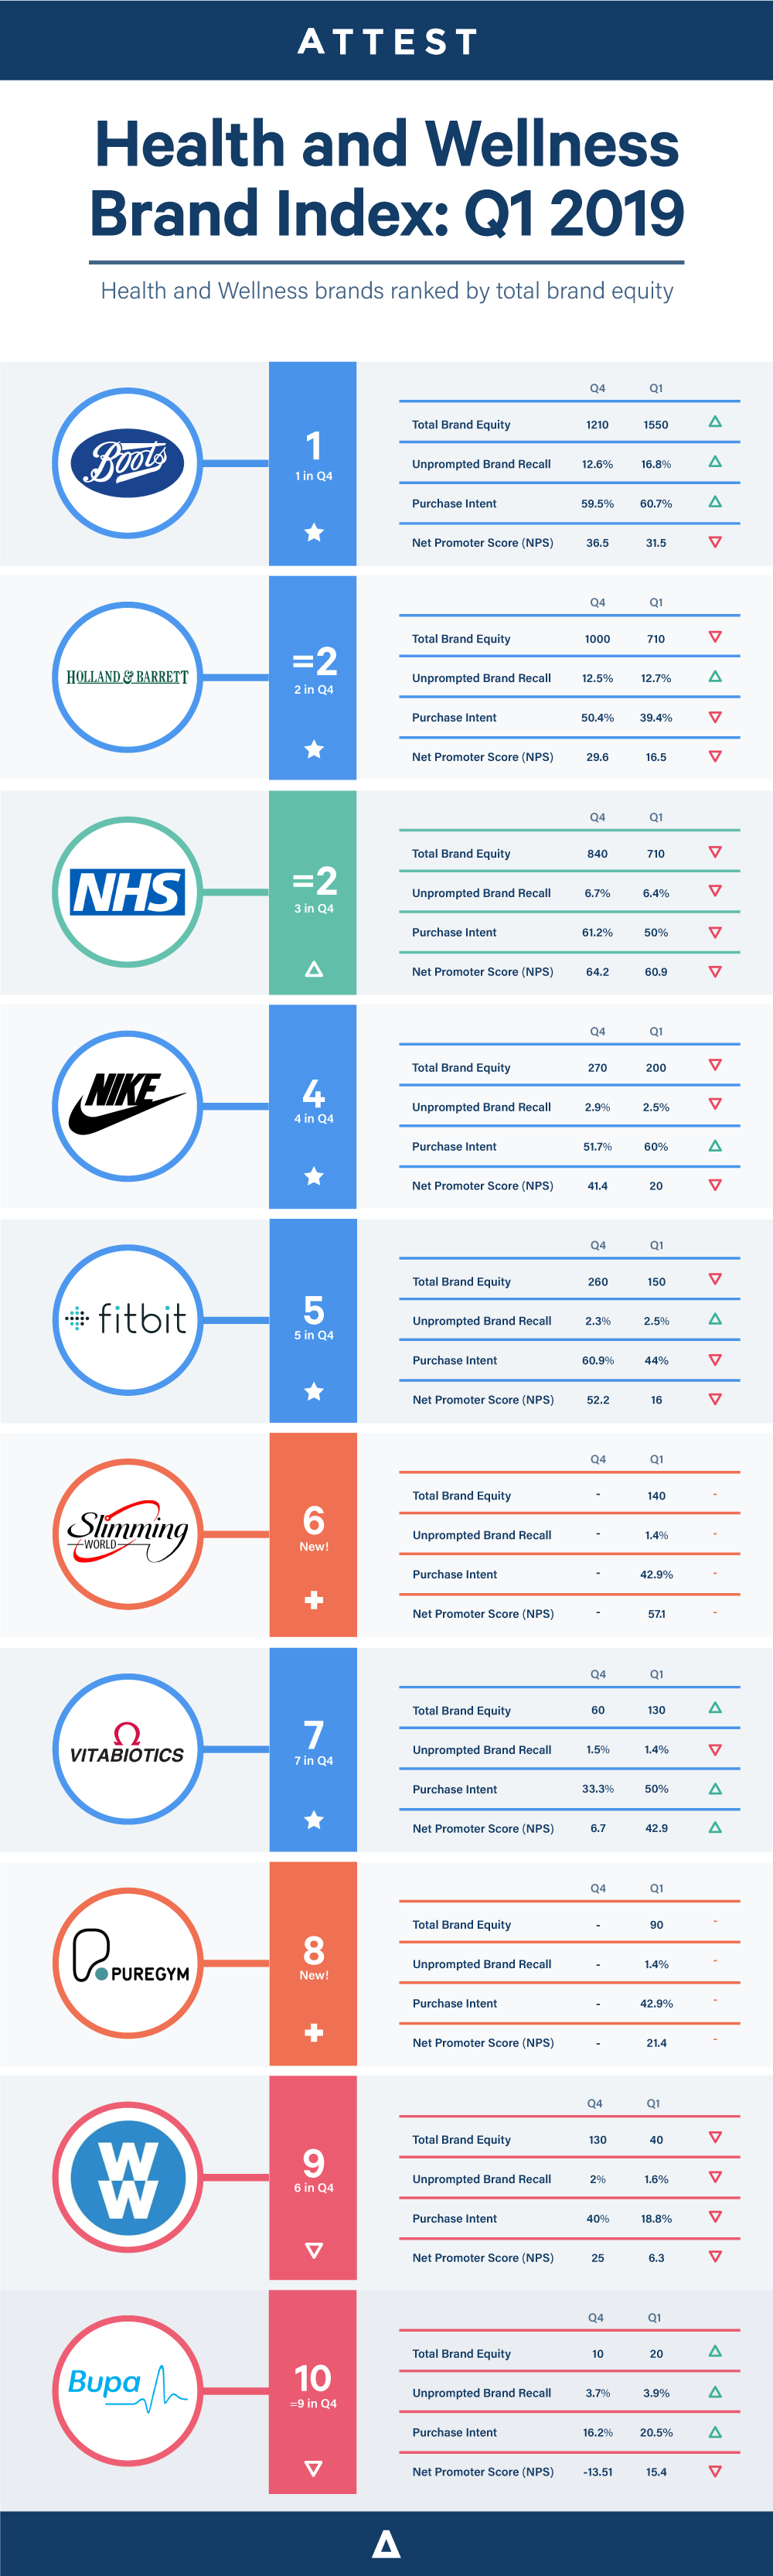 Brand-index-health-2019-Q1